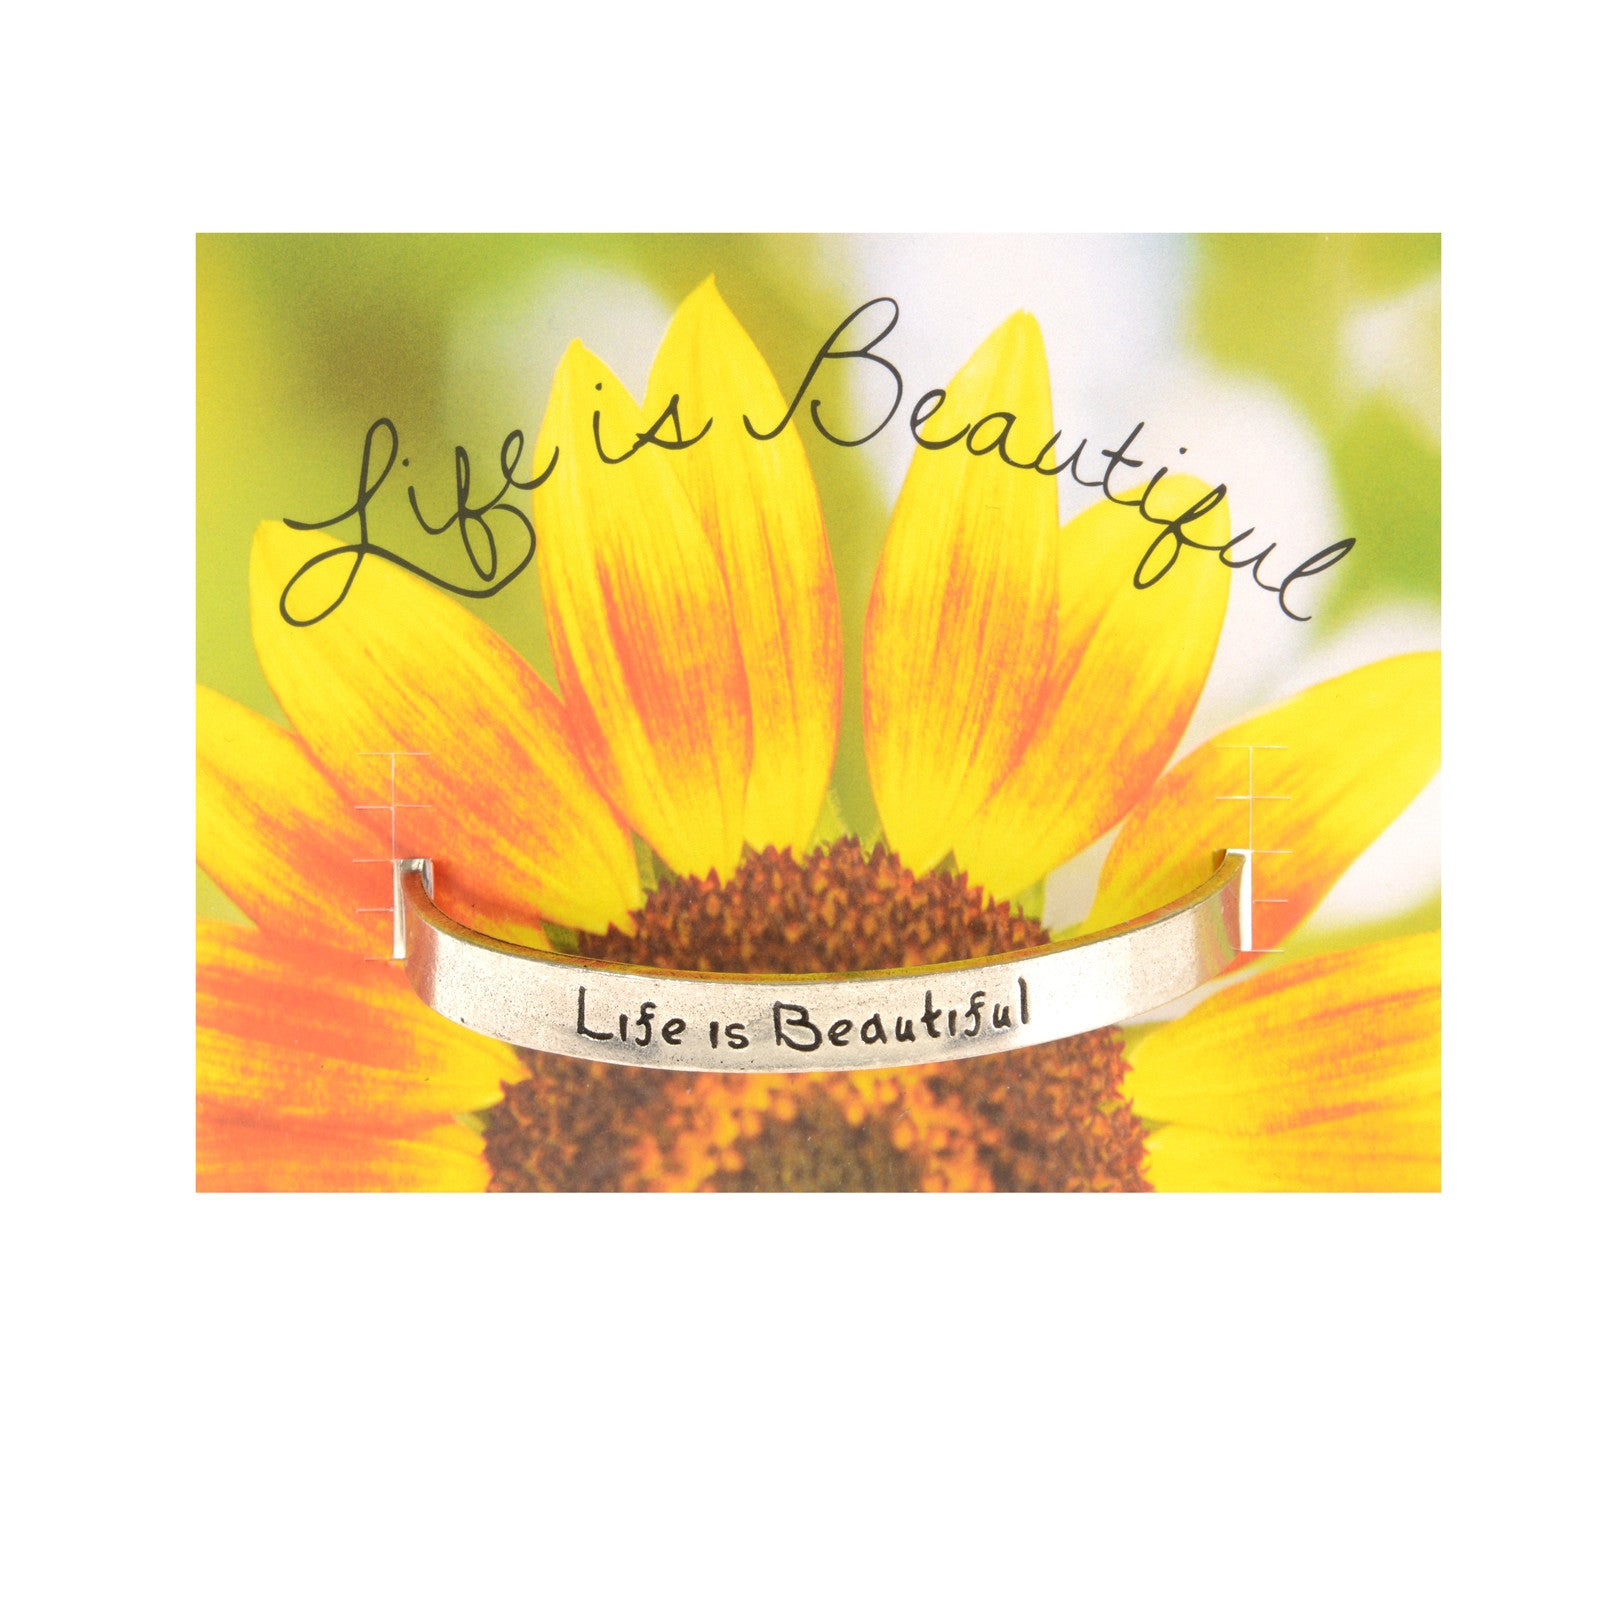 Life Is Beautiful Quotable Cuff Bracelet - Whitney Howard Designs